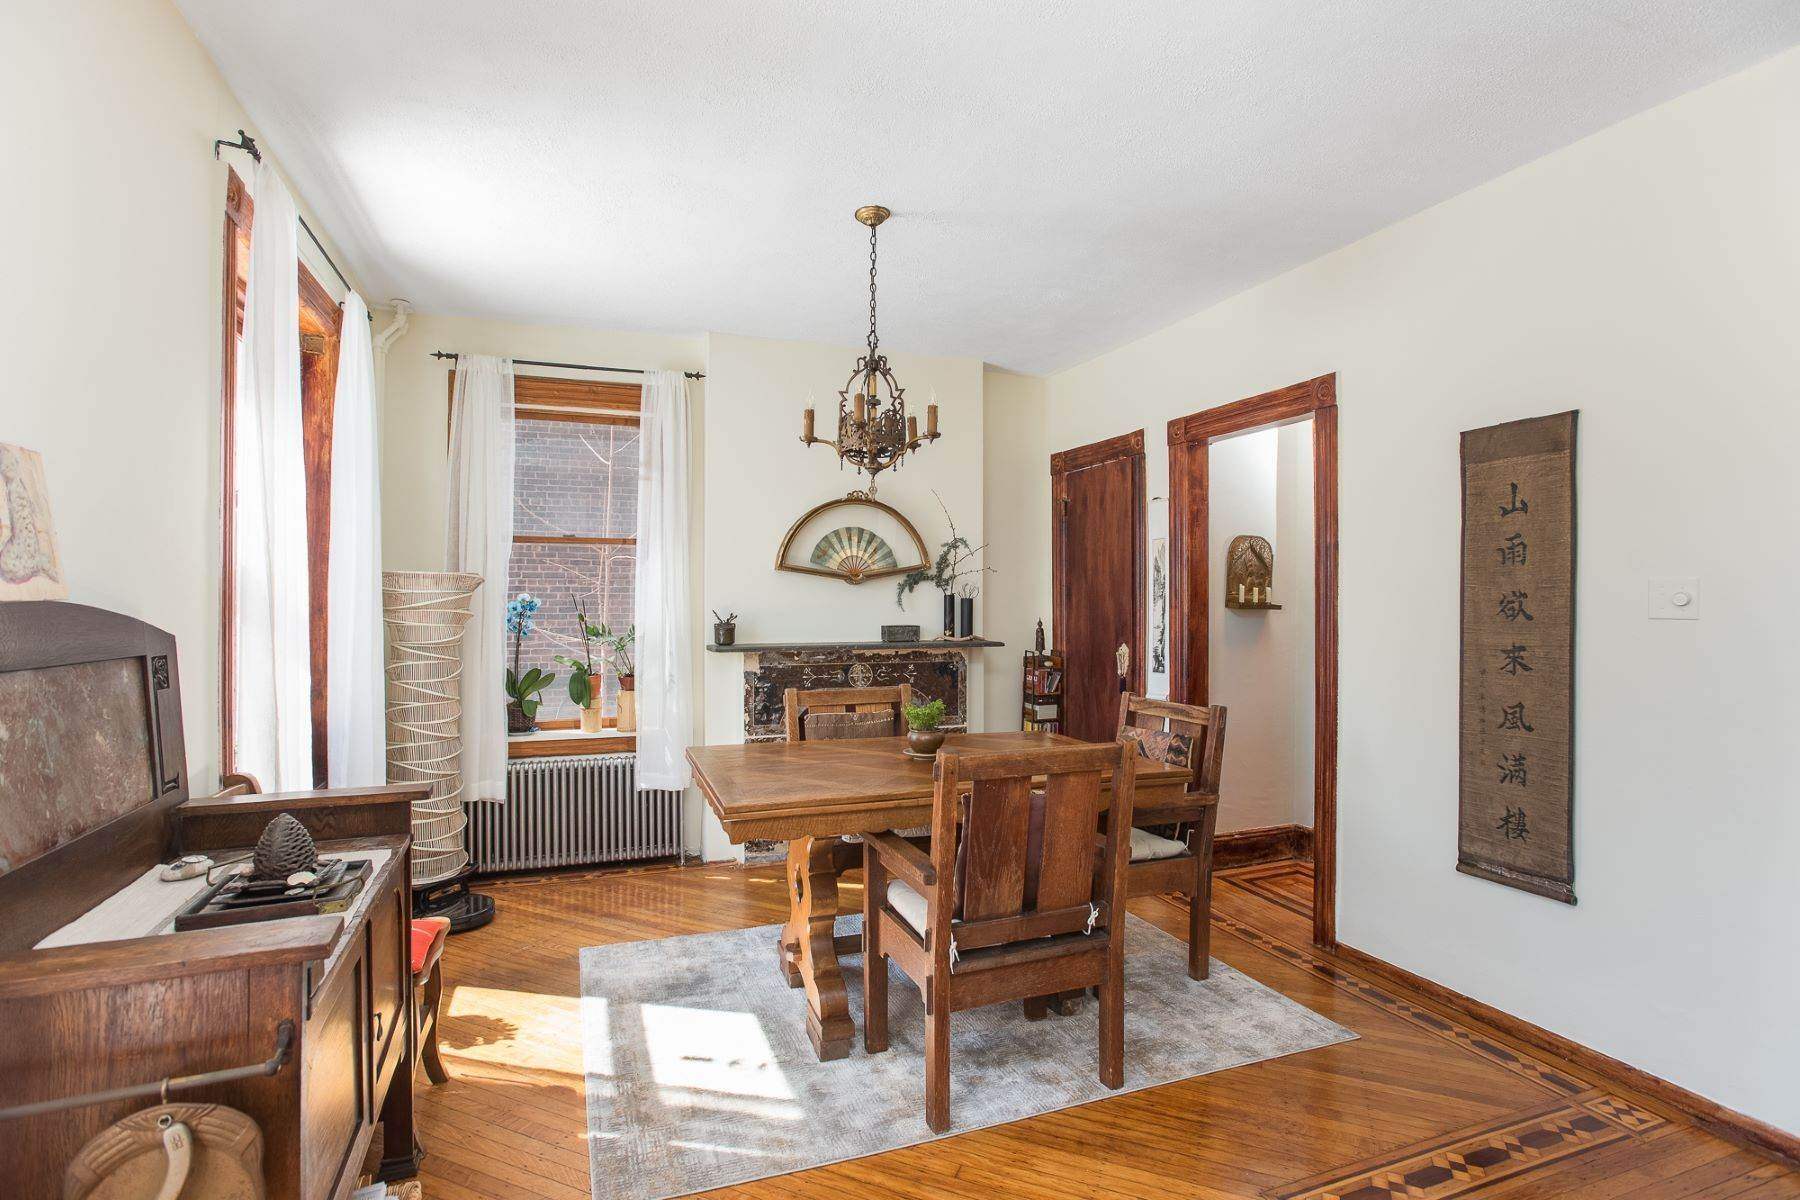 Single Family Homes para Venda às The beauty and craftsmanship of yesteryear with modern upgrades 7 Britton St Jersey City, Nova Jersey 07306 Estados Unidos